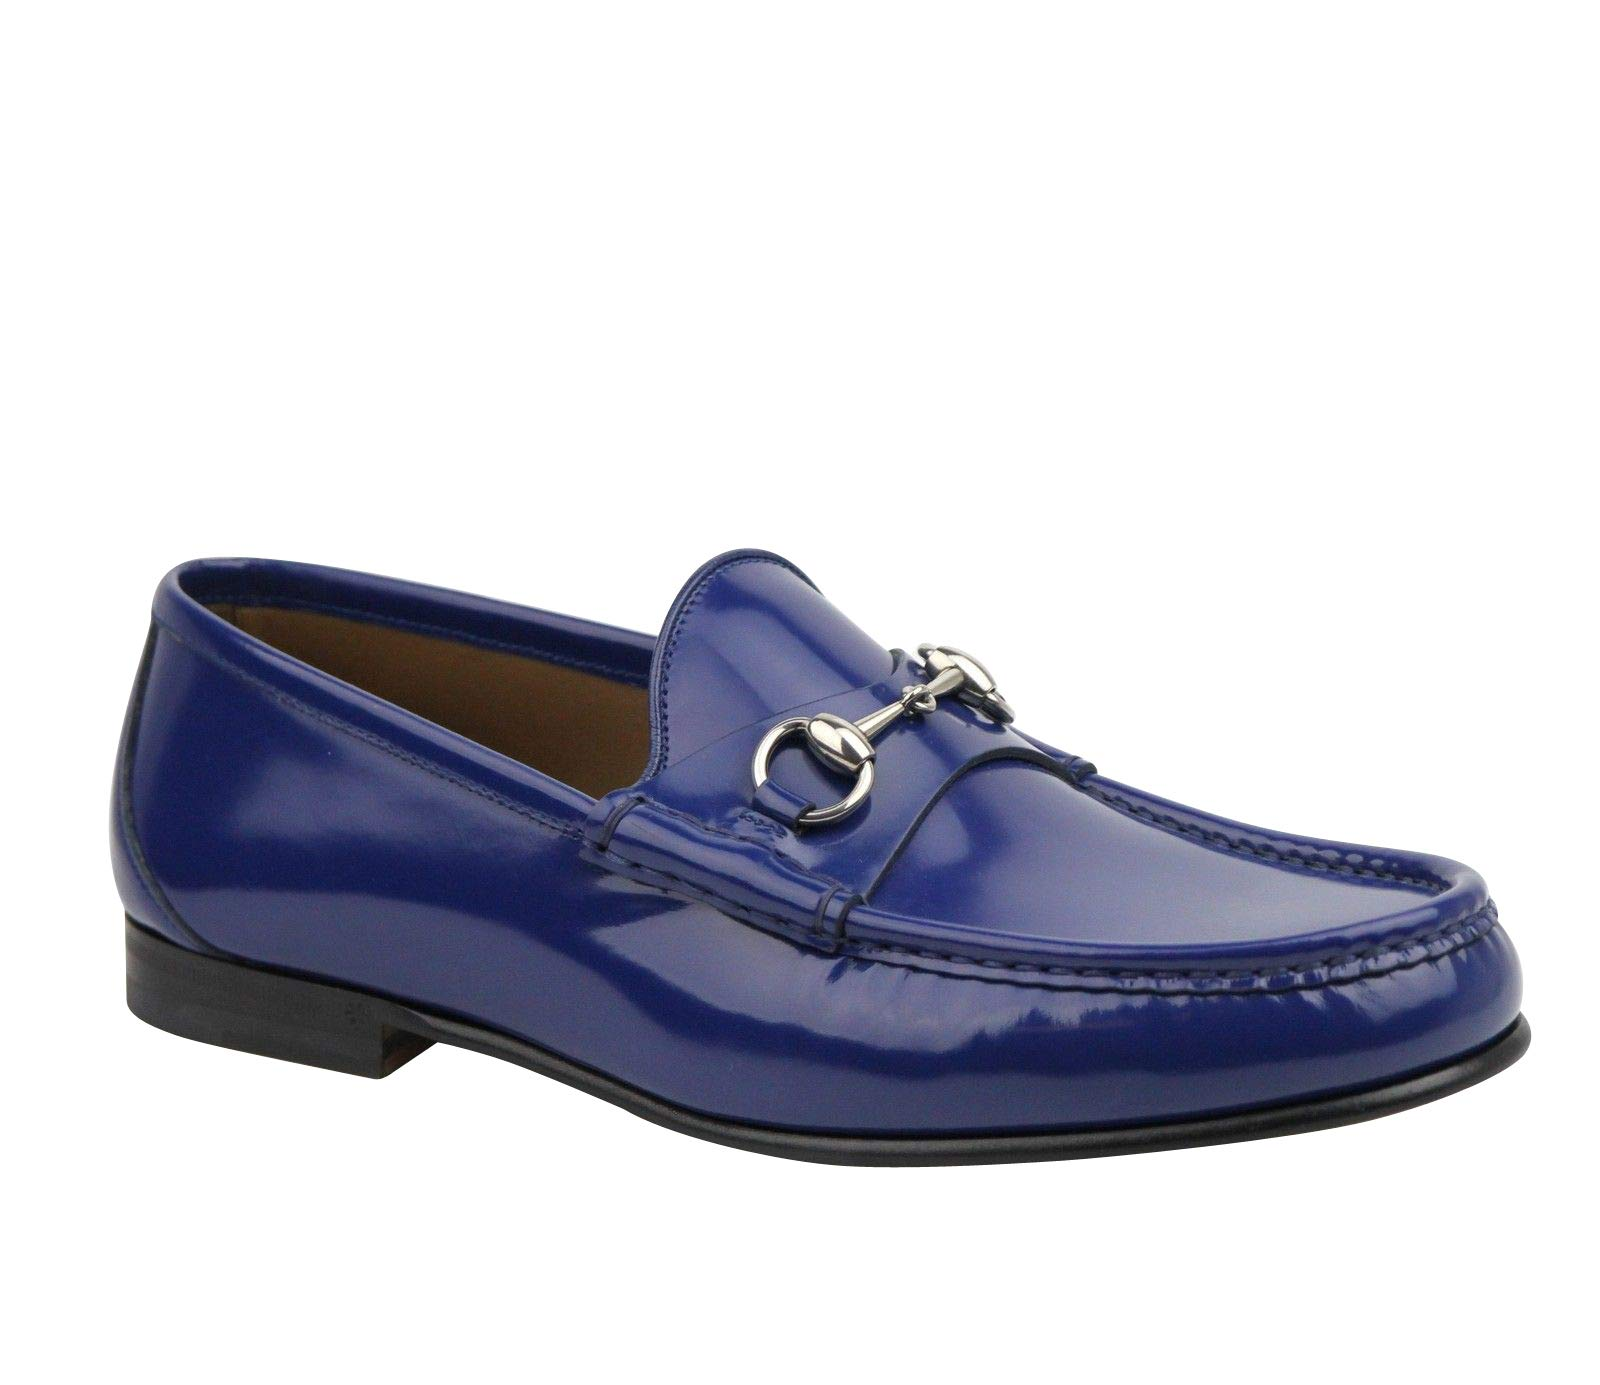 6b3e7e37775 Gucci Brushed Shiny Blue Patent Leather with Horsebit Detail Loafer 387598  4236 (9 G